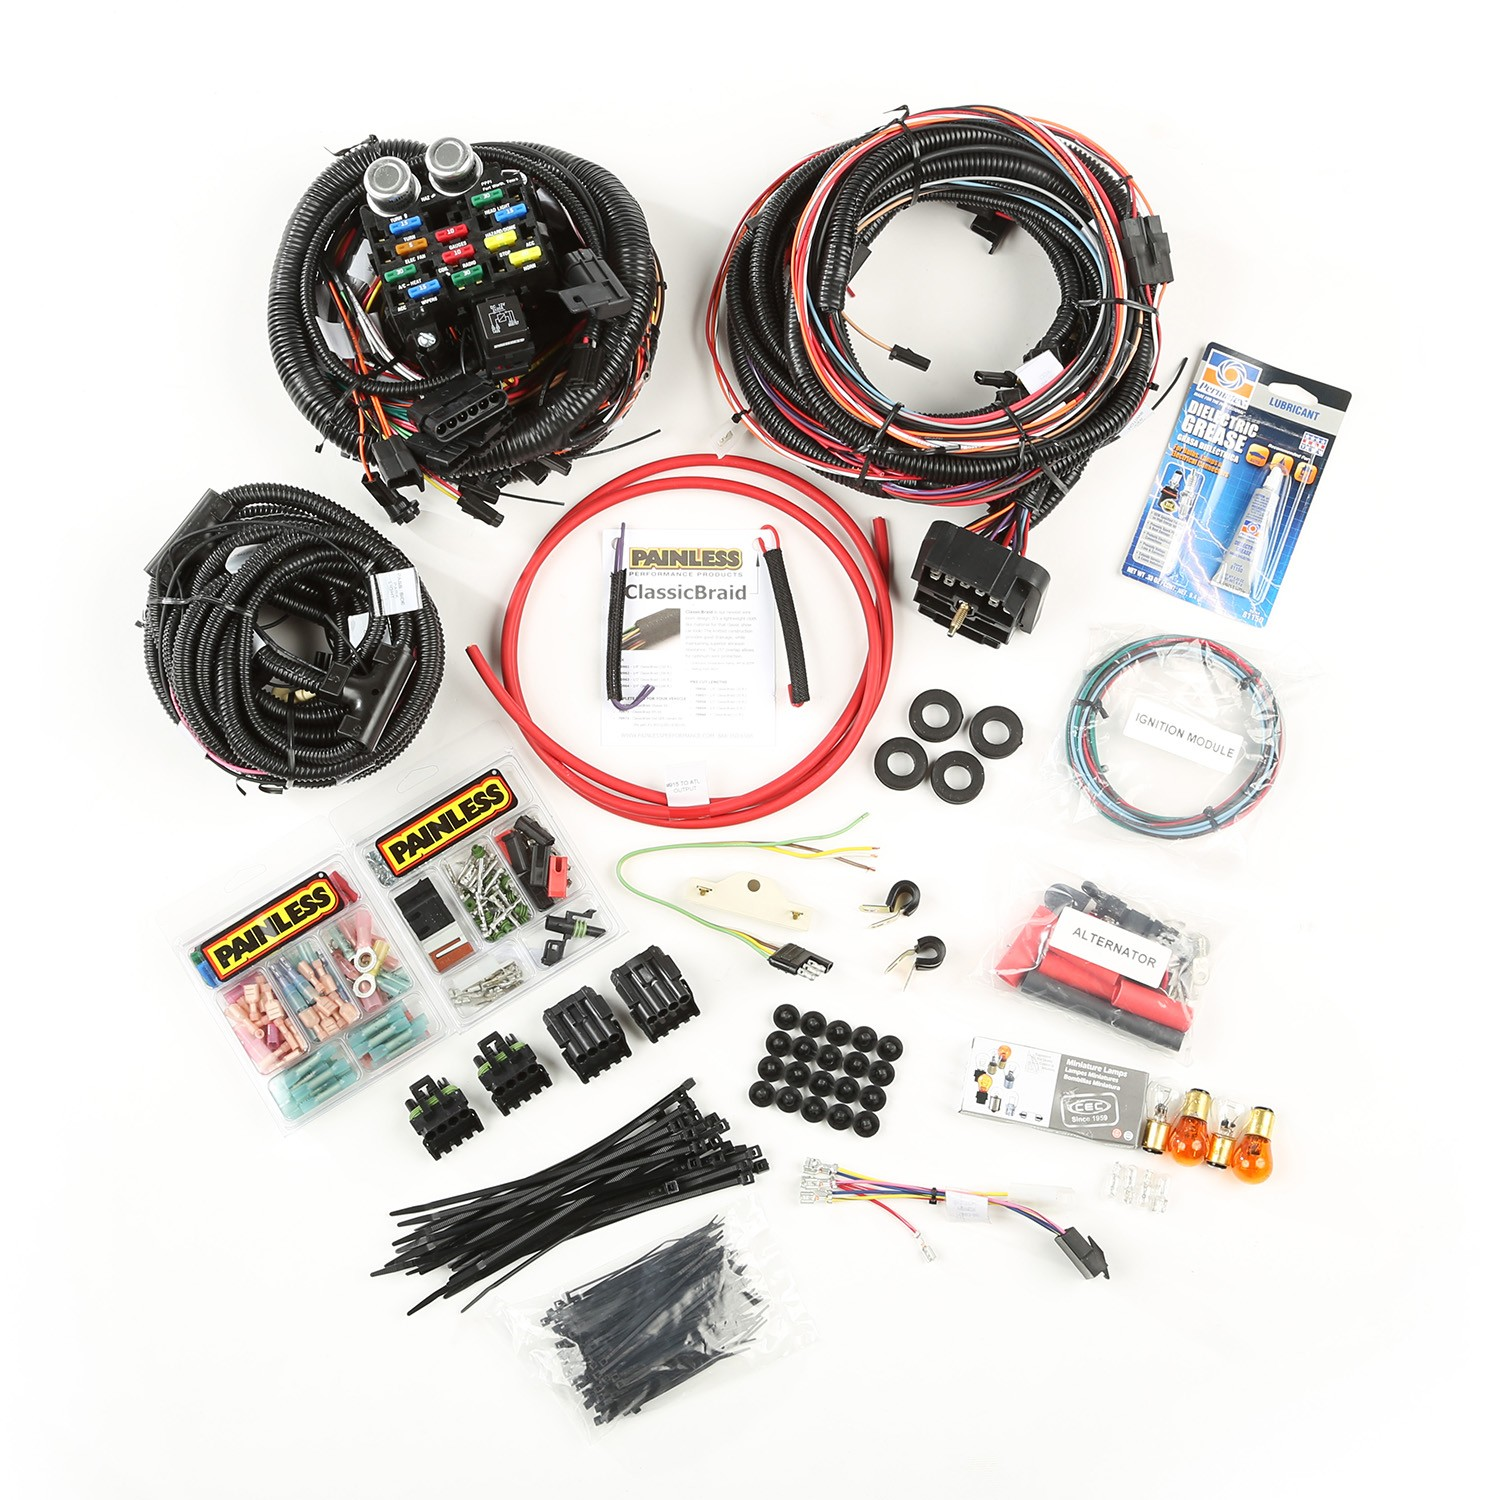 Painless Wiring Engine Wiring Harness 76-86 Jeep CJ5/CJ7/CJ8 | Cj7 Wiring Harness |  | Oconee Off-Road